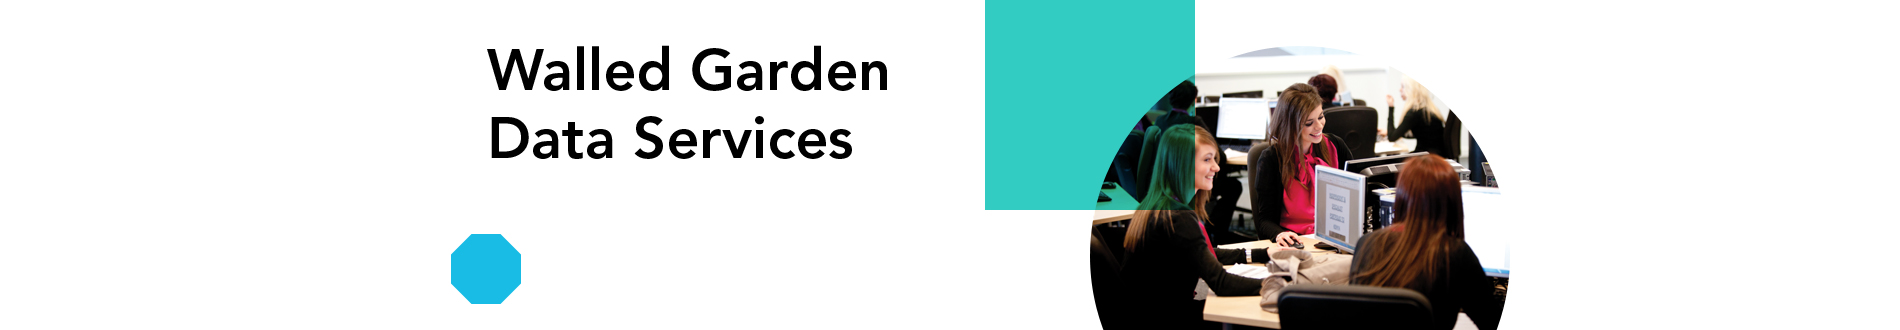 X_walled-garden-data-services_1900x330 jpg